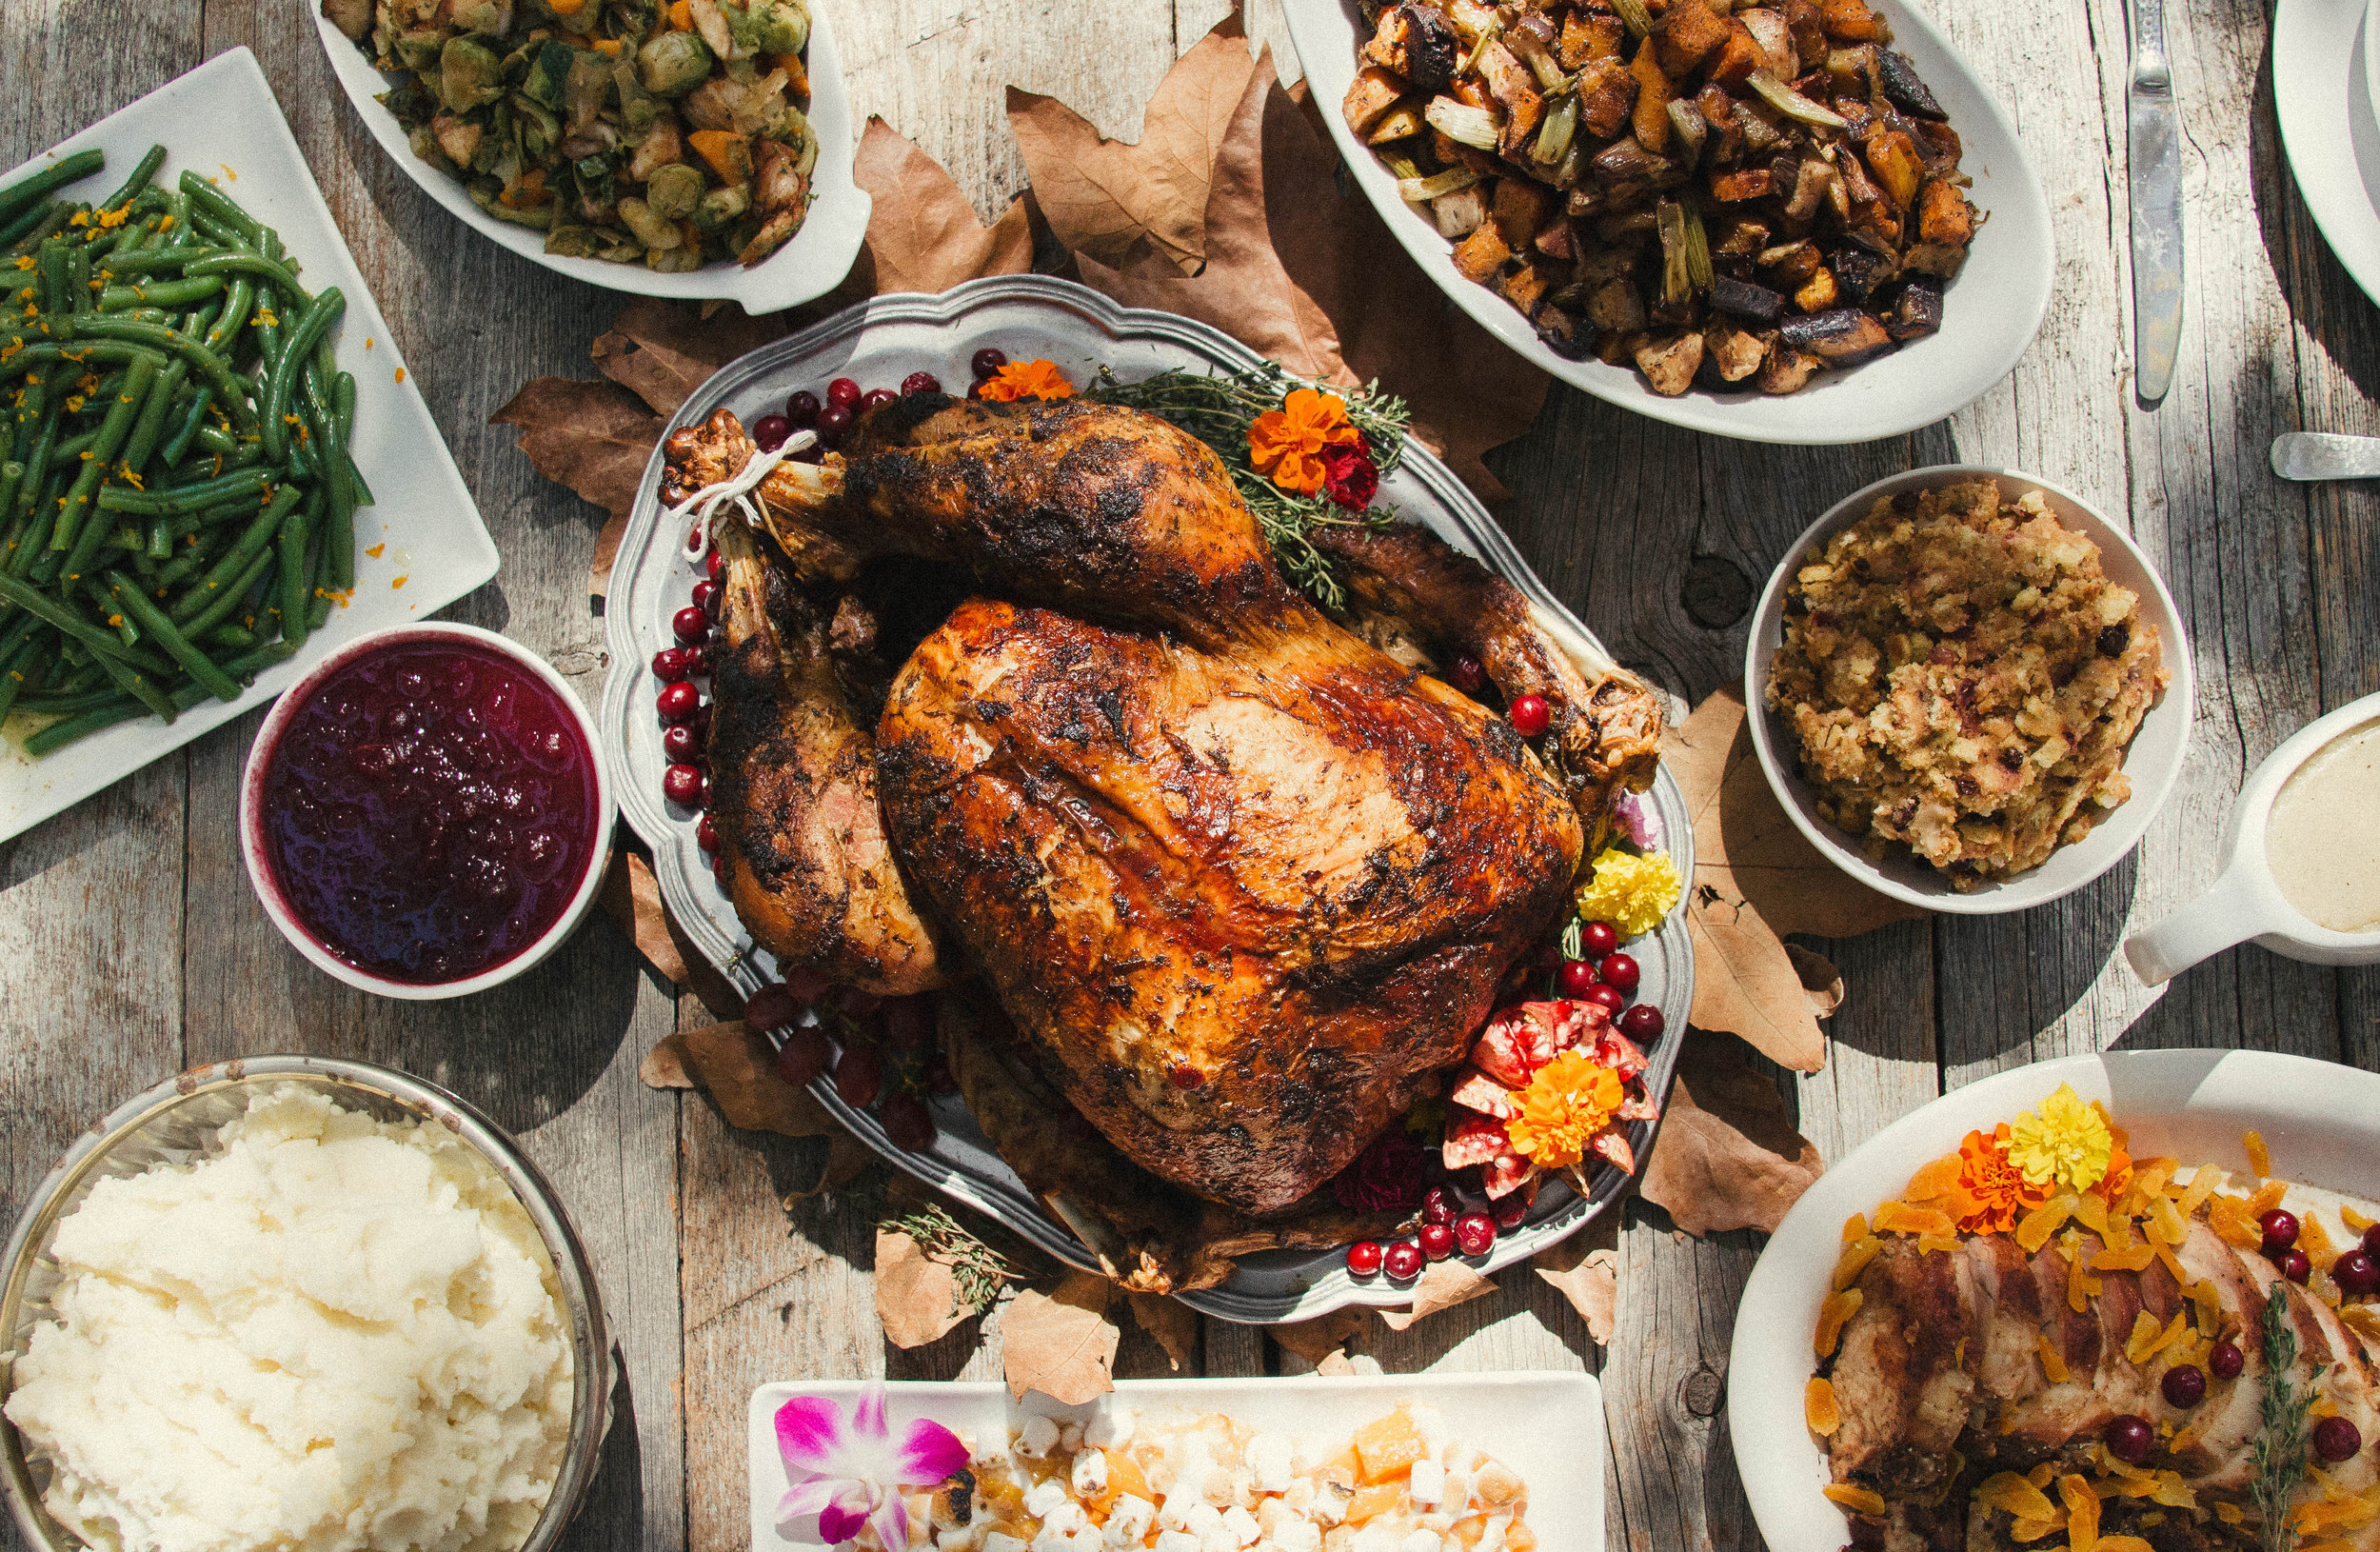 An outdoor turkey dinner with sides.jpg